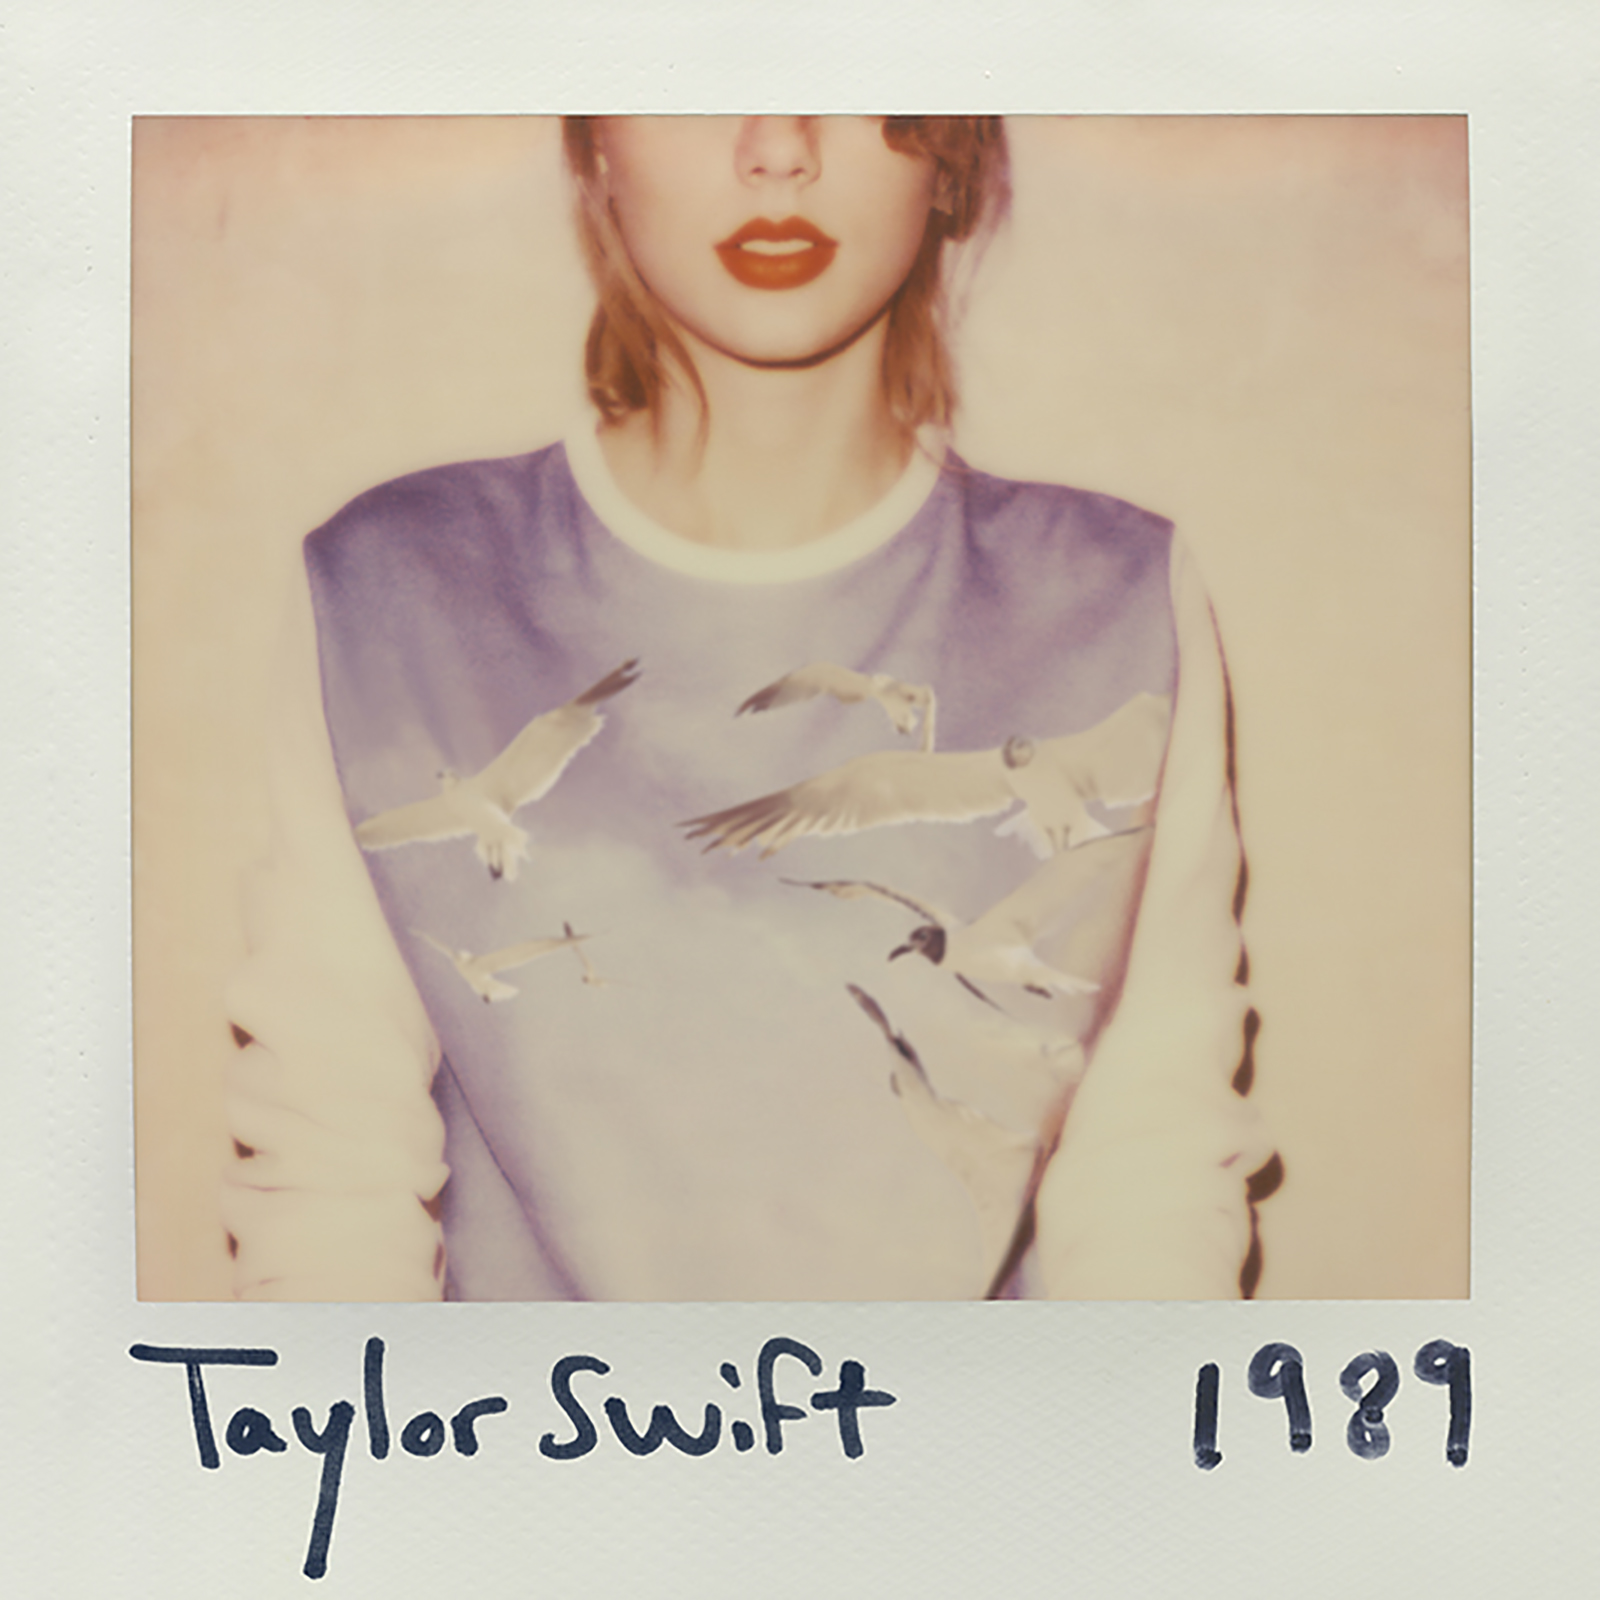 Taylor Swift 1989 album cover full size